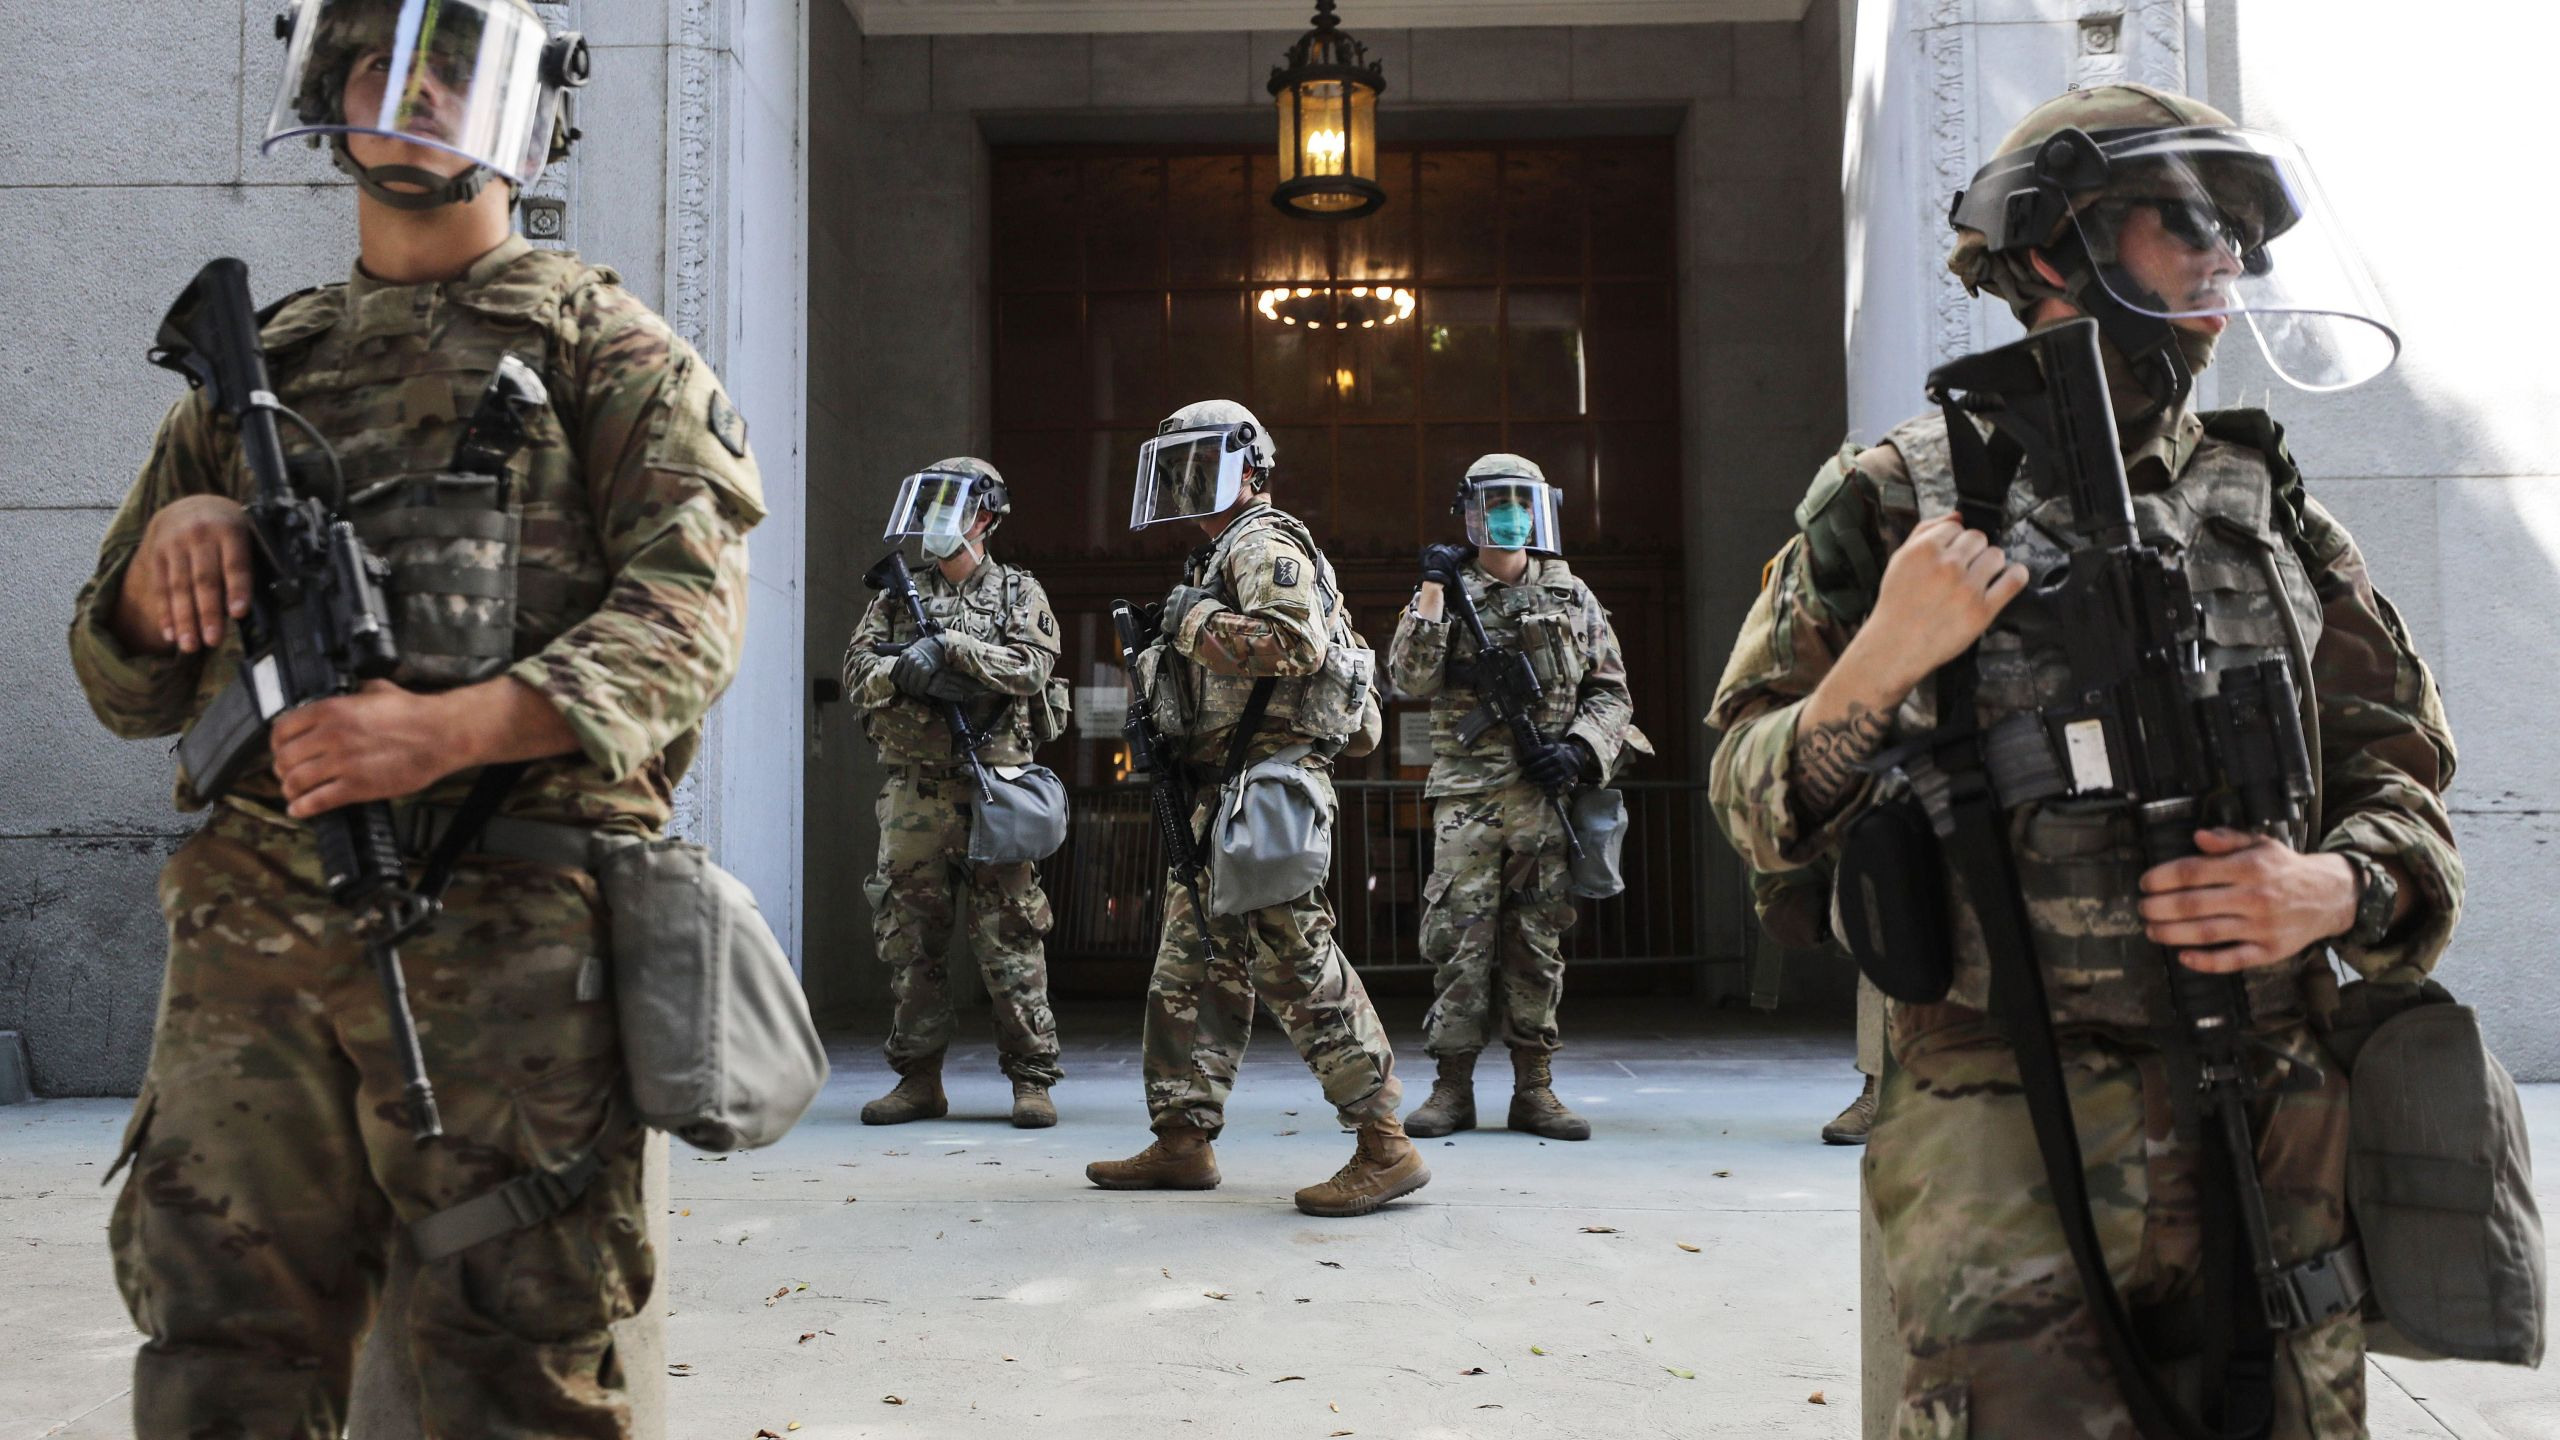 National Guard troops are posted outside the Los Angeles County District Attorney's office during a peaceful demonstration over George Floyd's death on June 3, 2020. (Mario Tama / Getty Images)